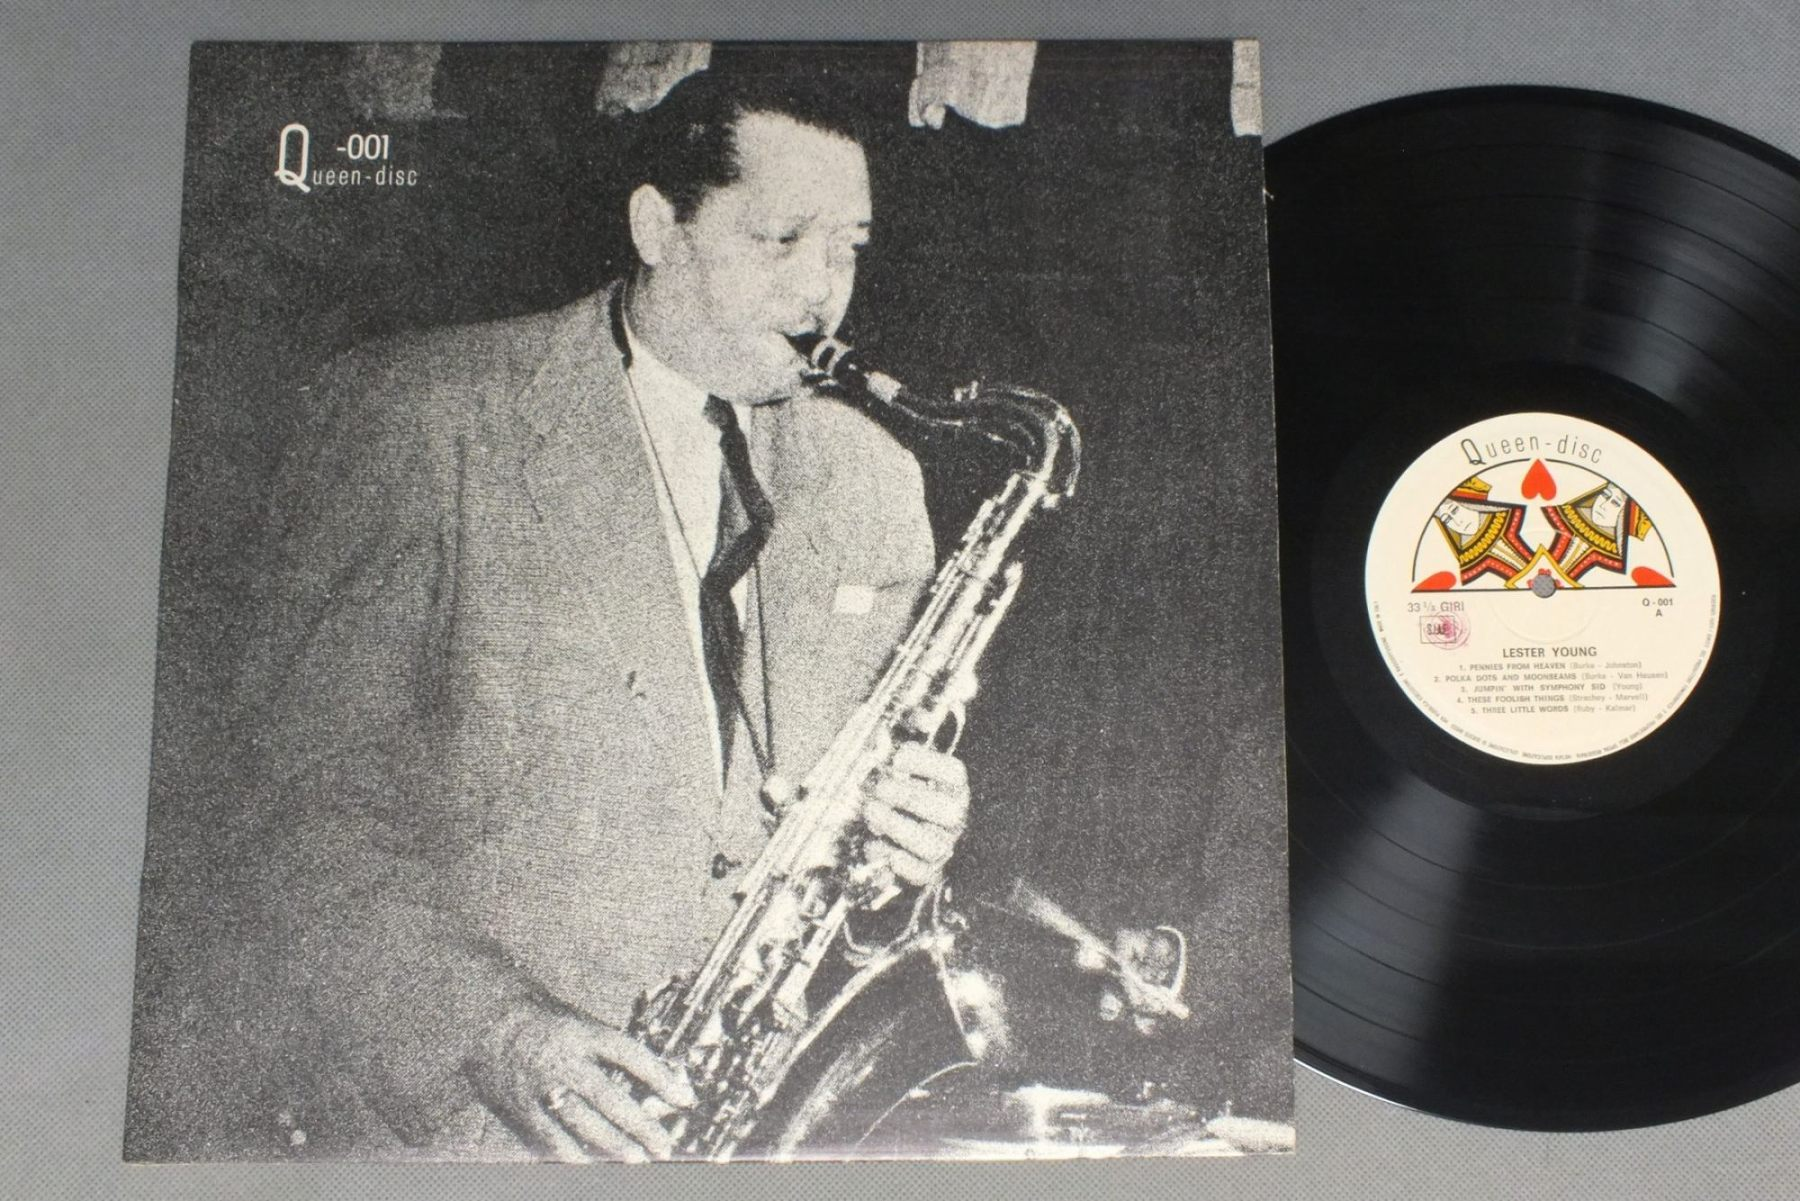 LESTER YOUNG LESTER YOUNG